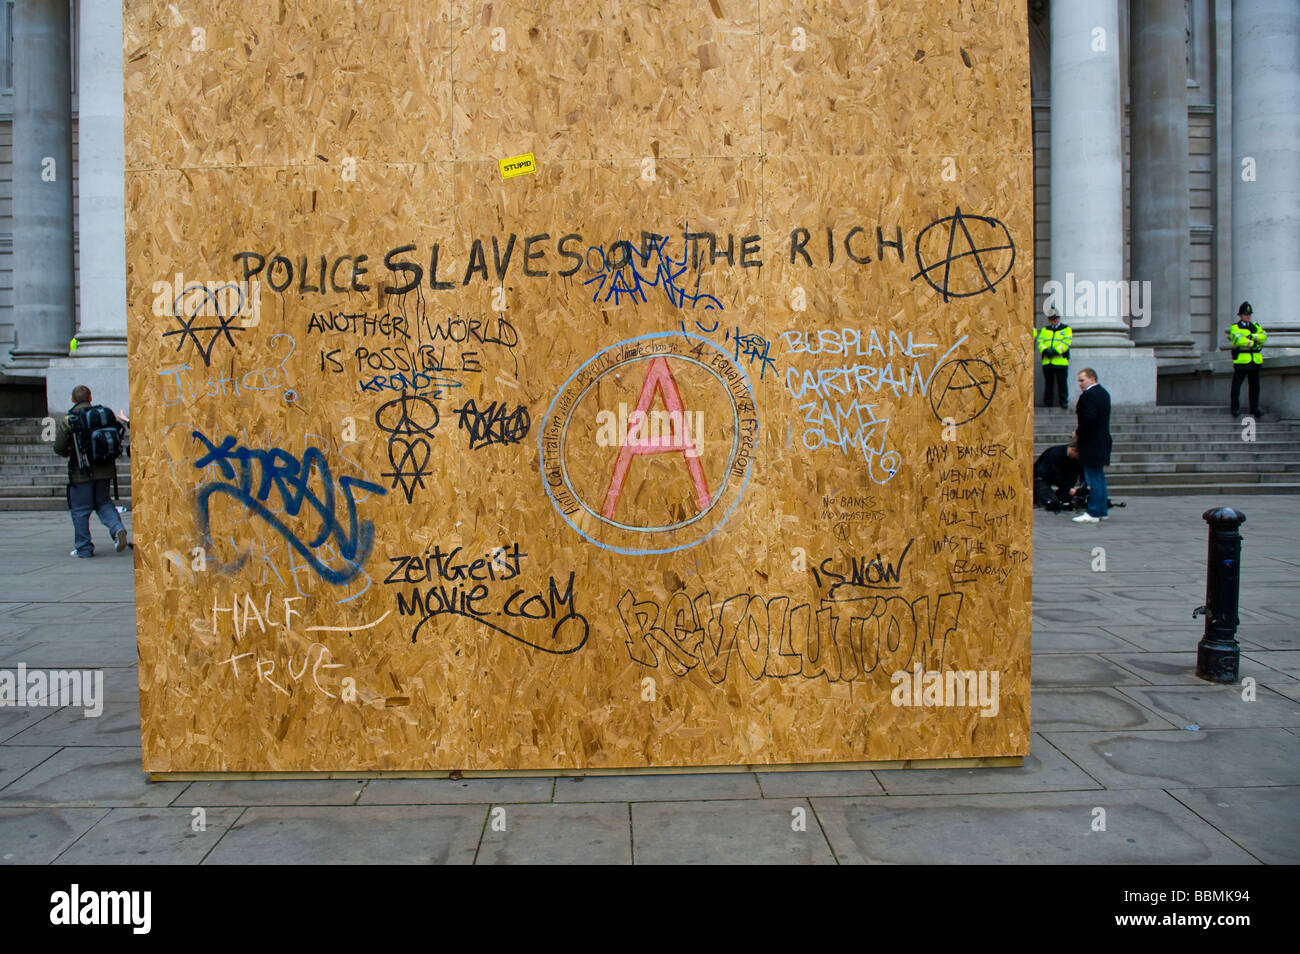 Board with anarchyst symbols in the City of London at protest ahead of the G20 summit of world leaders, 1 April - Stock Image